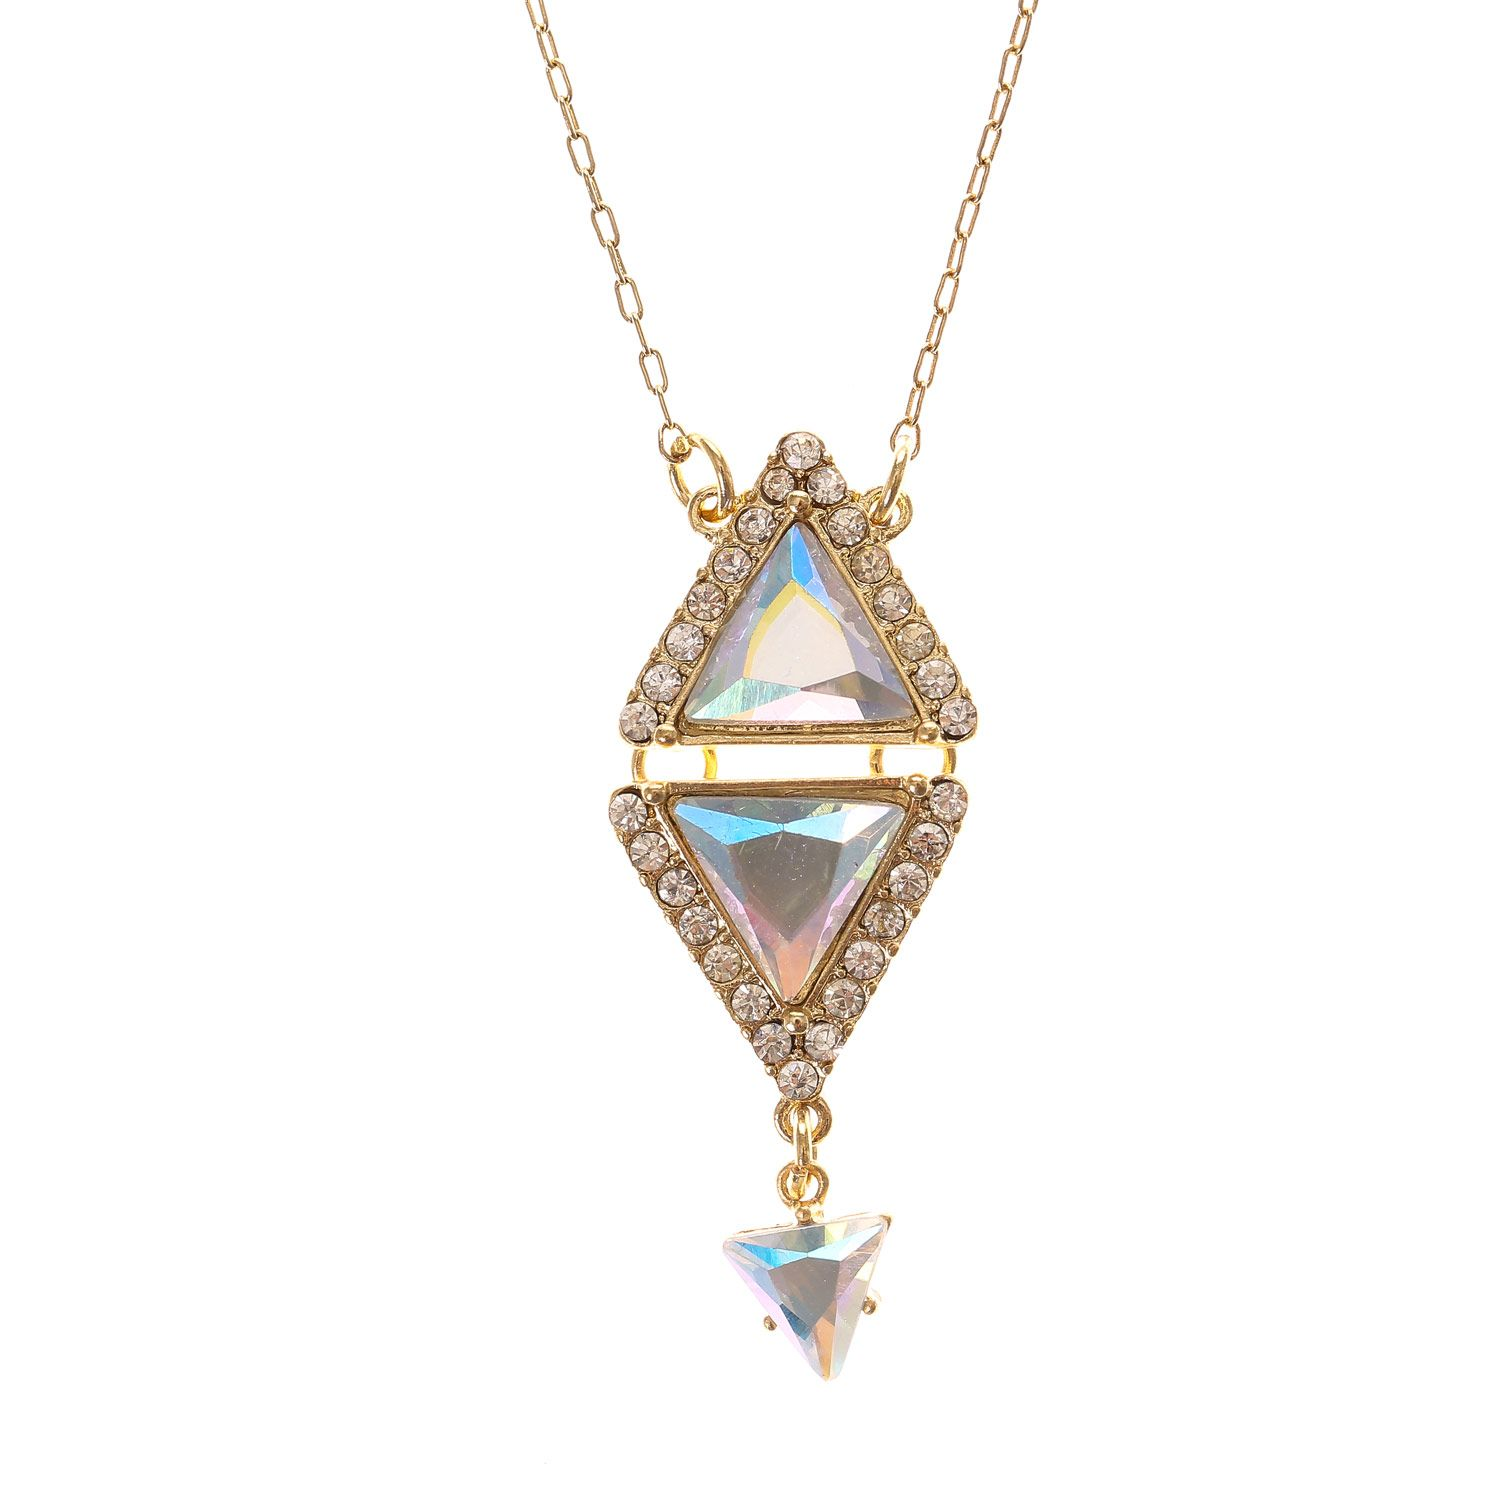 Katy perry gold prism pendant necklace katy perry gold prism pendant necklace aloadofball Image collections